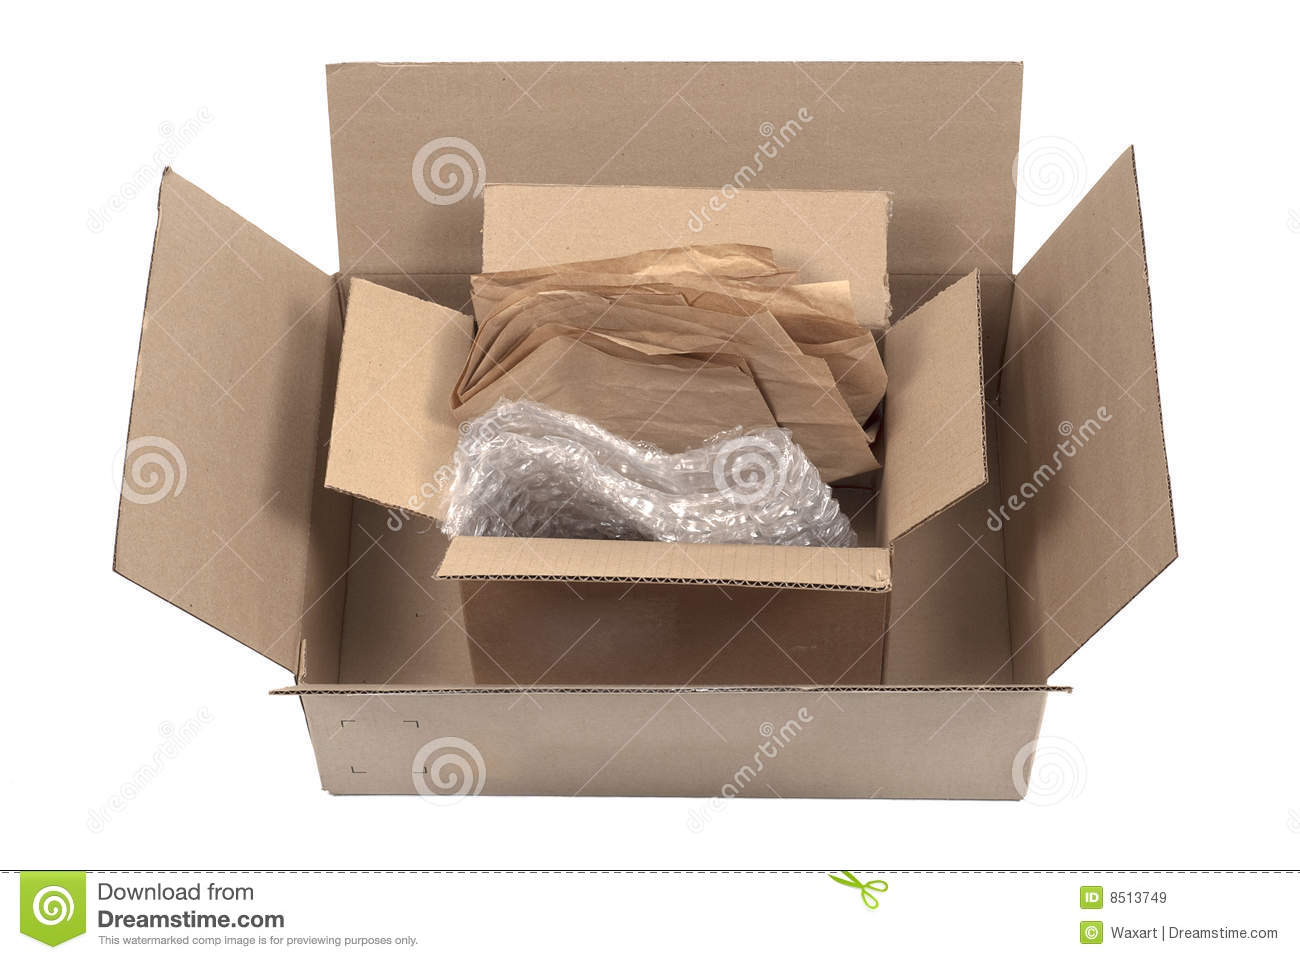 how to open and reseal cardboard with plastic packaging